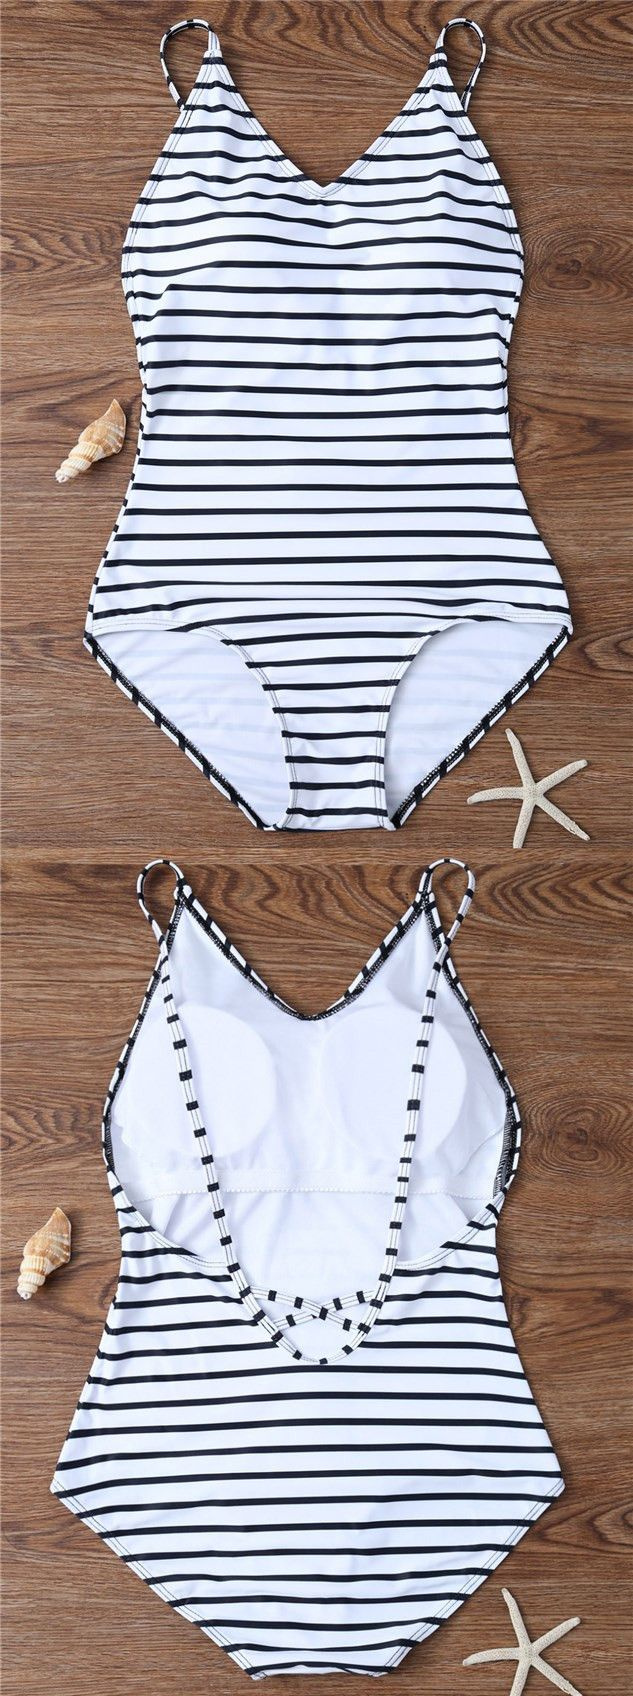 one piece swimsuits modest white bikini summer fashion bikinis bathing suit for teens girls swimwear stripes swimsuit one piece. Save.extra 20% OFF on $45+ Sitewide till 30th use code SUMMER20%OFF.